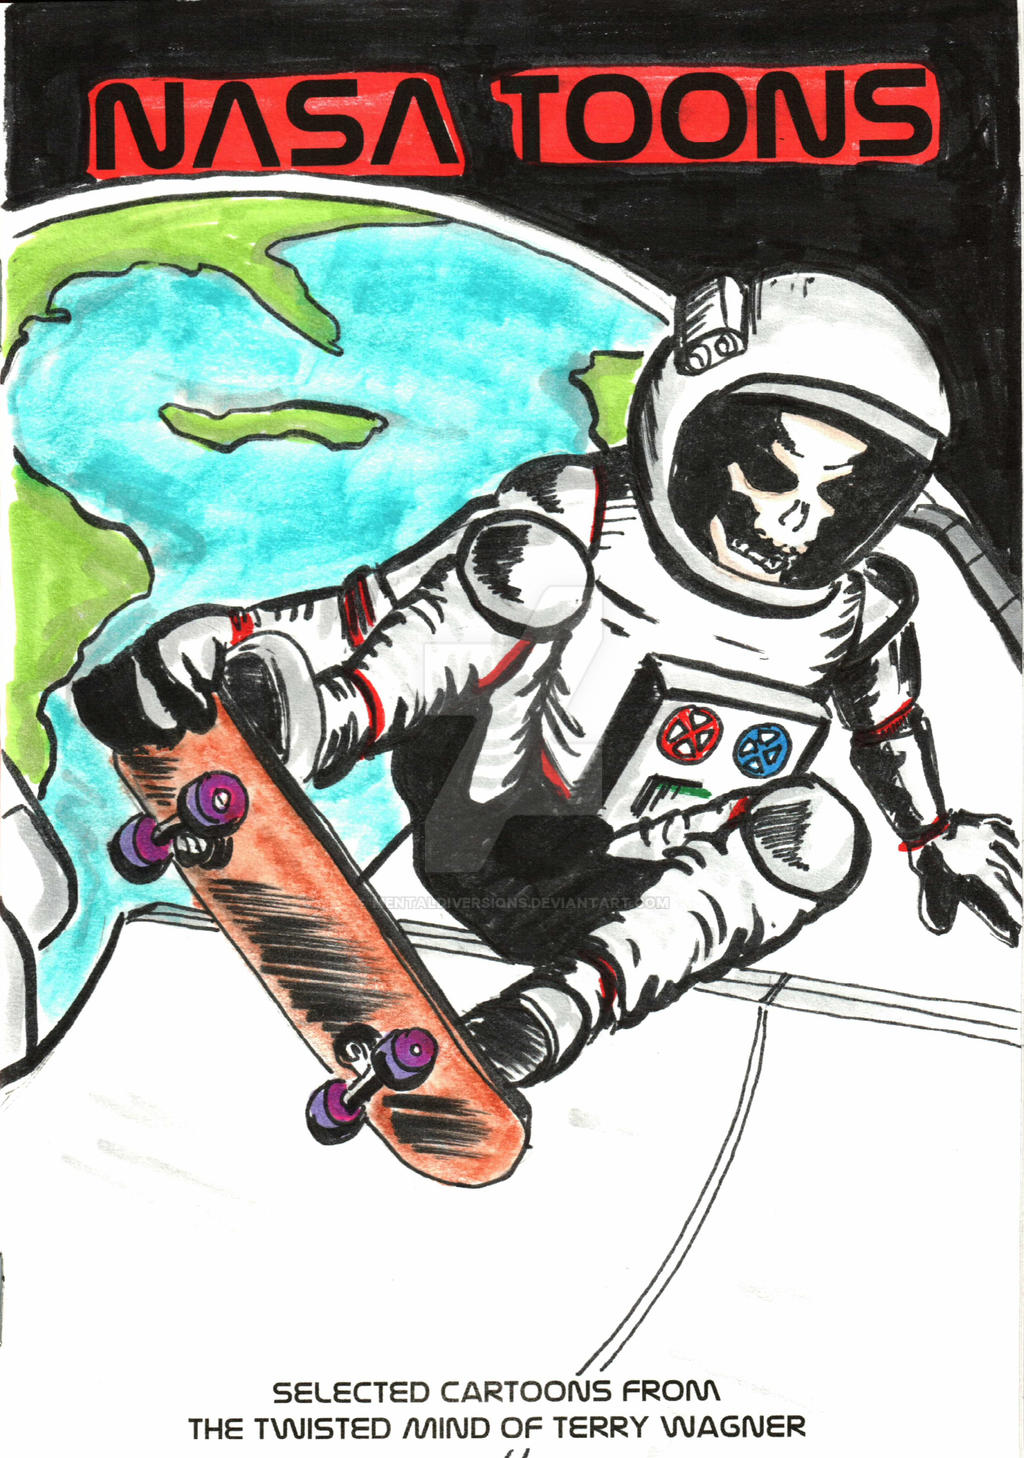 Space Skater by mentaldiversions